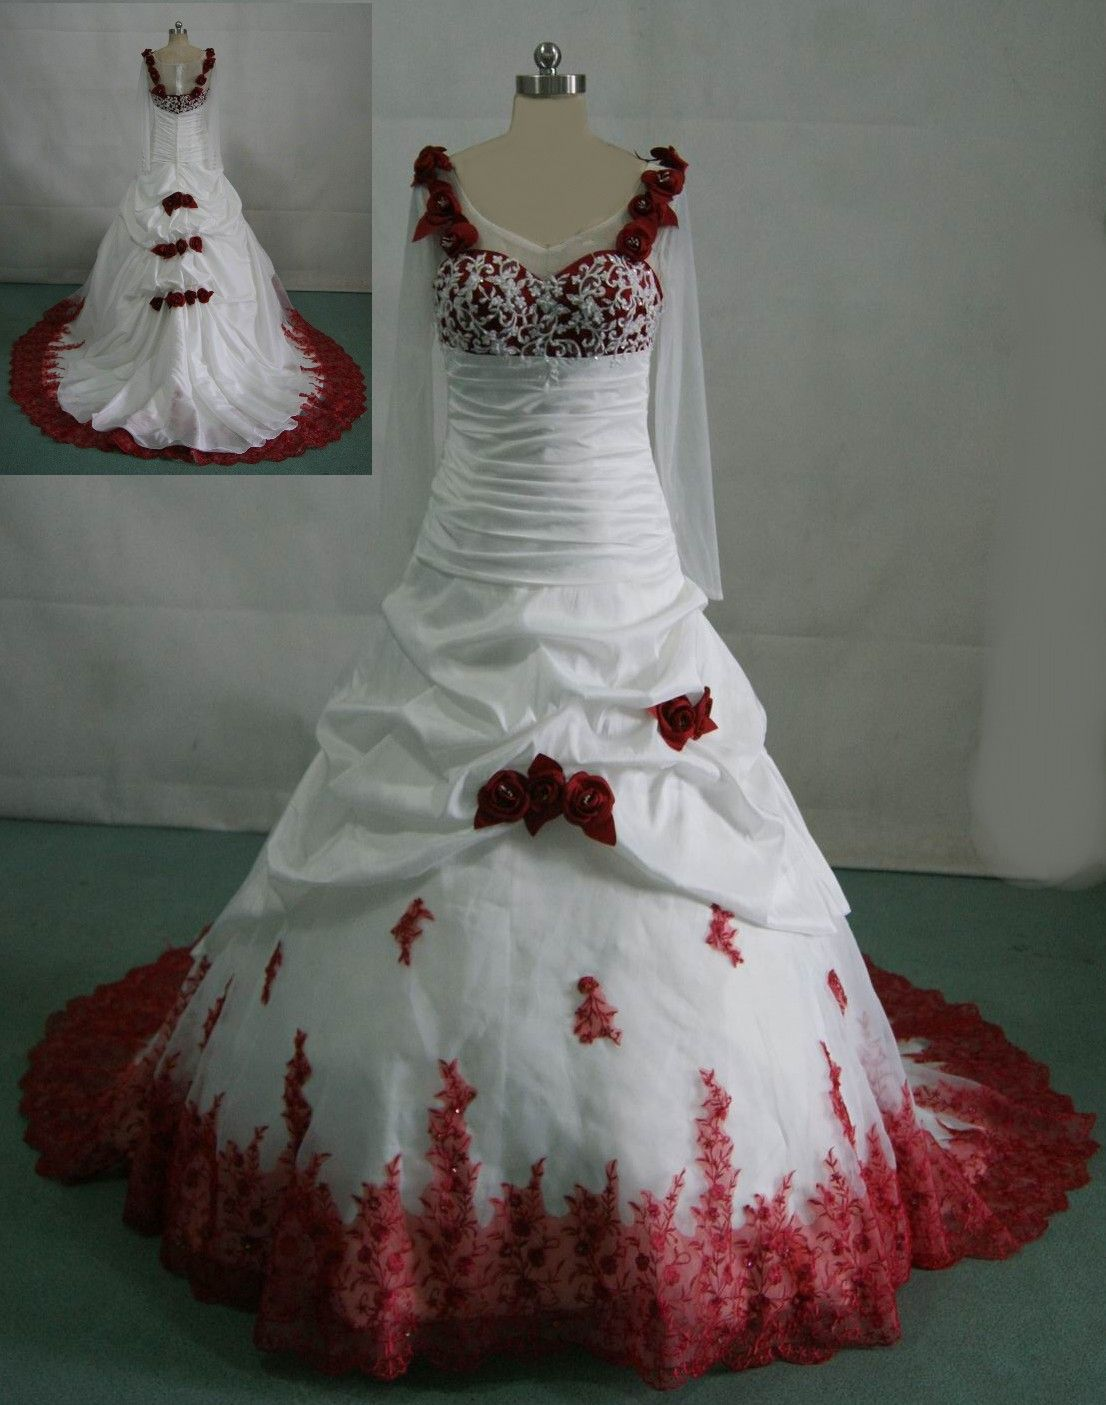 Trendy Red Wedding Dresses White wedding gown with red roses on the dress